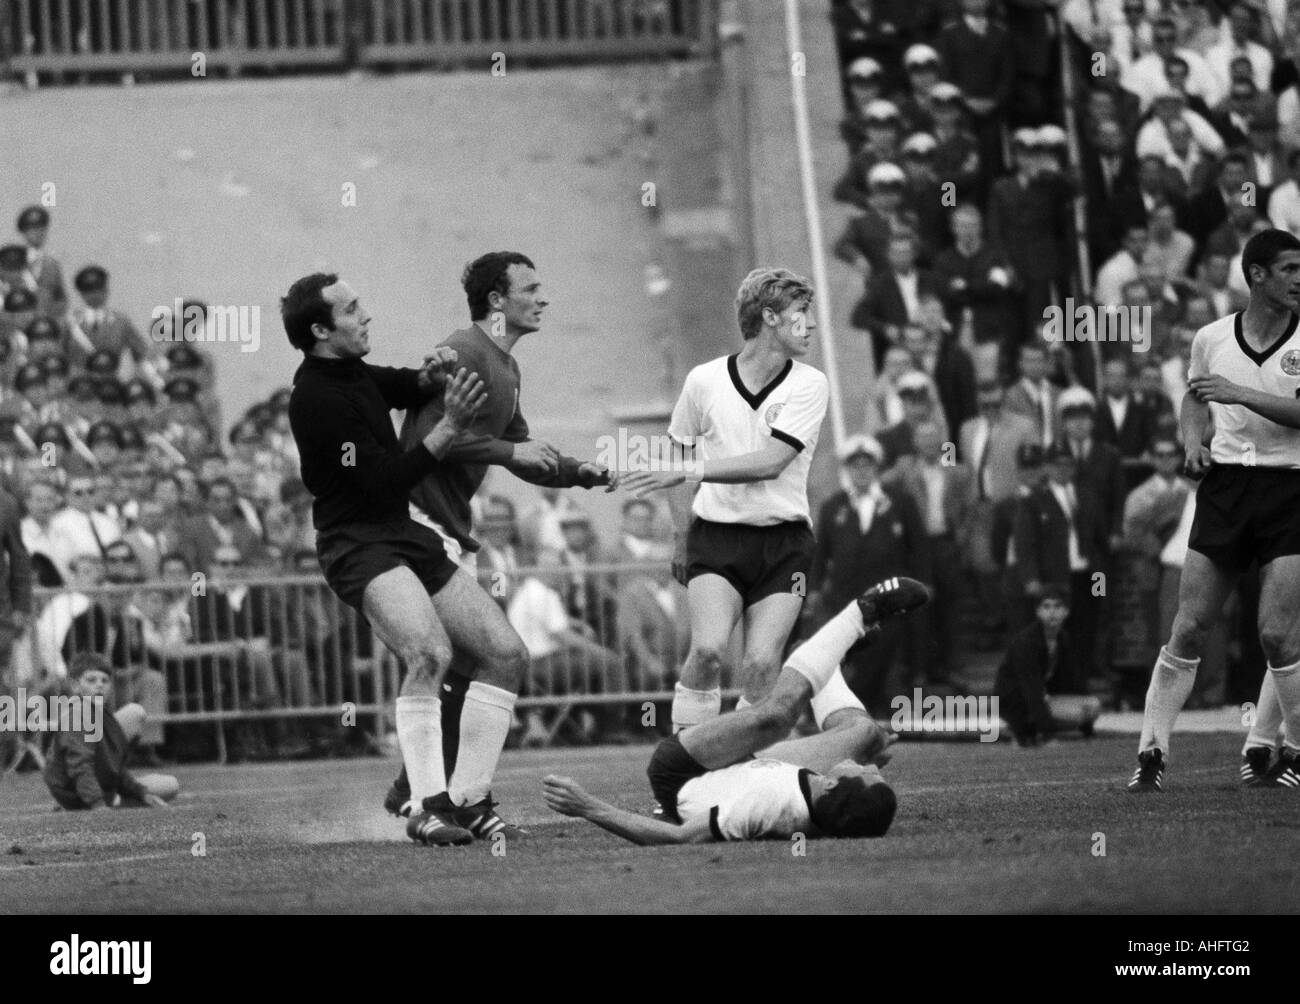 football, international match, 1968, Niedersachsen Stadium in Hanover, Germany versus England 1:0, scene of the match, f.l.t.r. keeper Horst Wolter (FRG), Brian Labone (England), Klaus Fichtel (FRG), a german player aground, Lorenz (FRG) - Stock Image